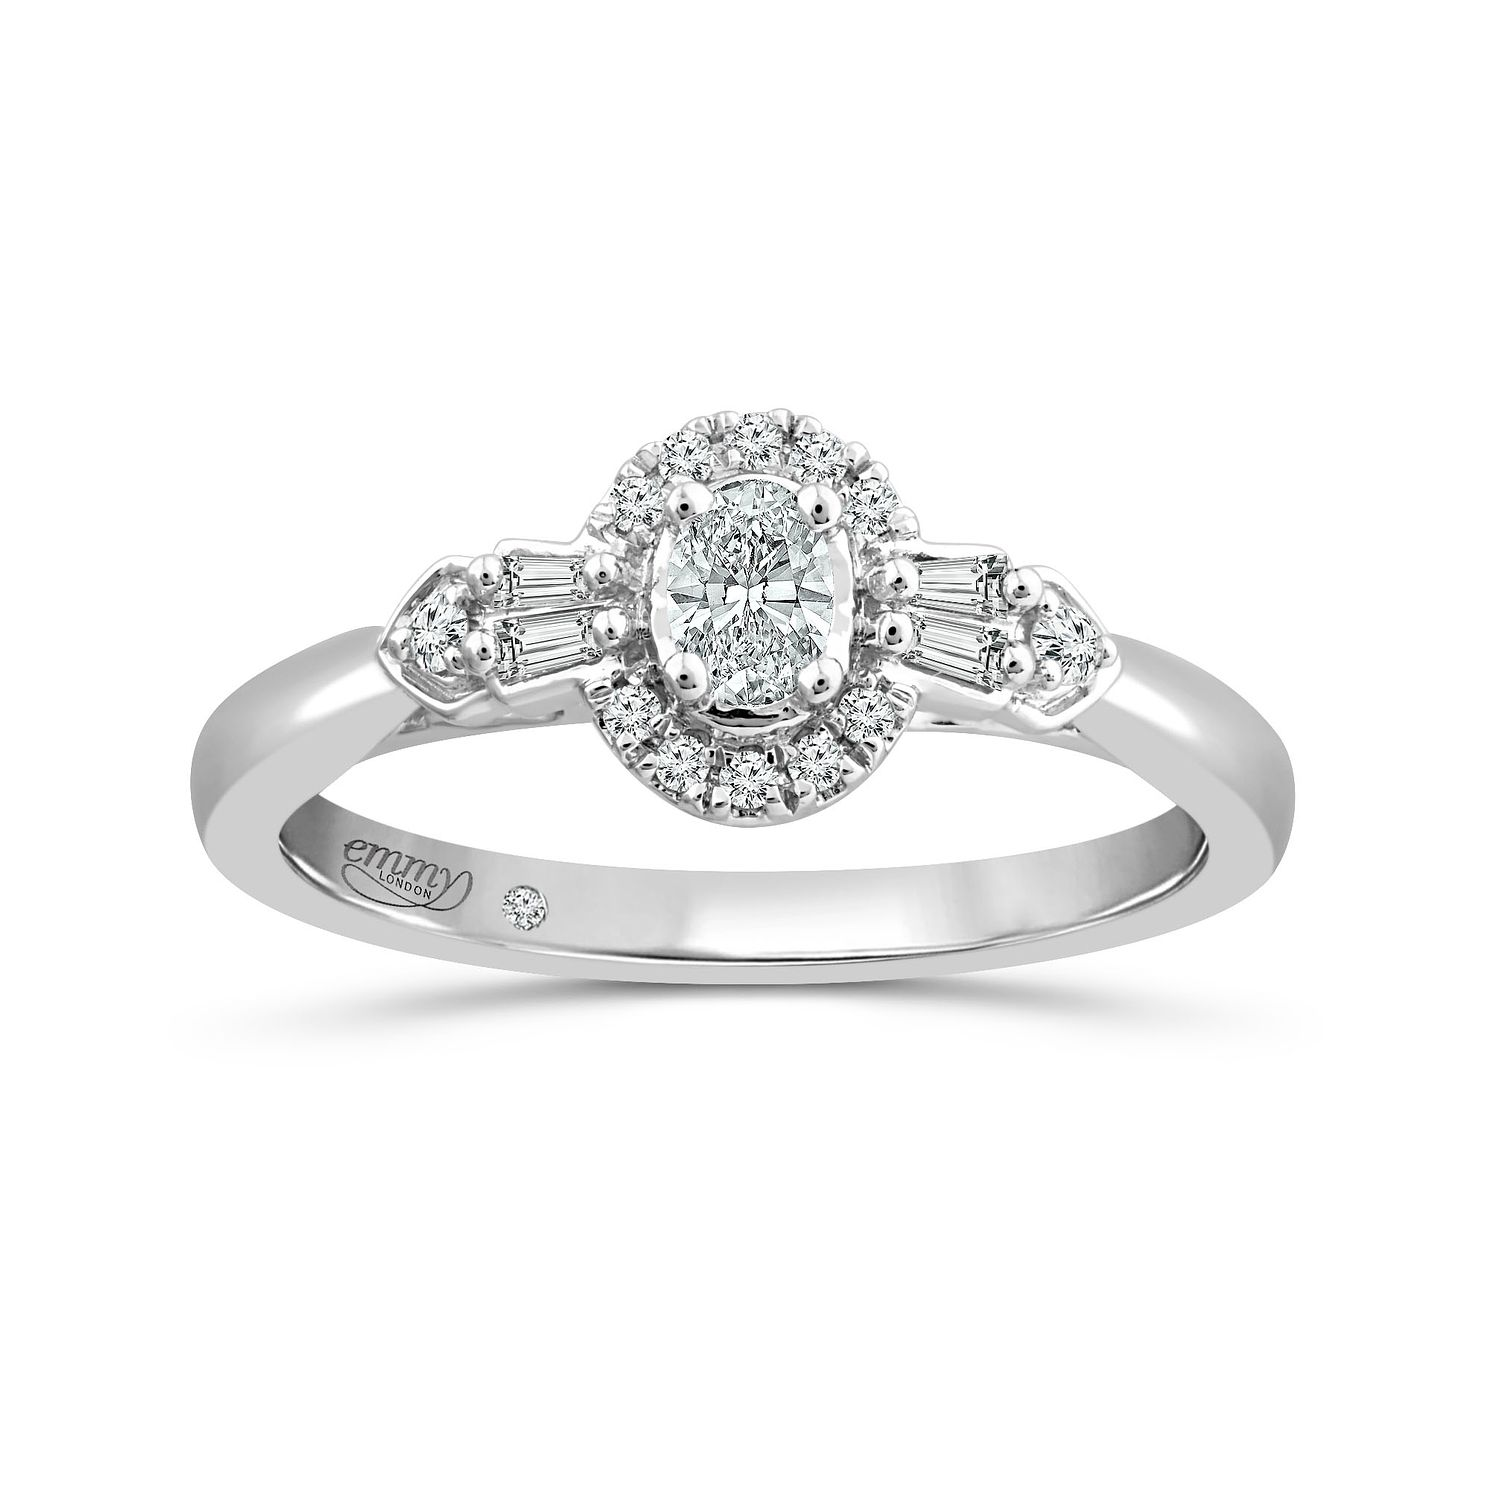 Emmy London 18Ct White Gold 1/4Ct Diamond Ring - Product number 5166632